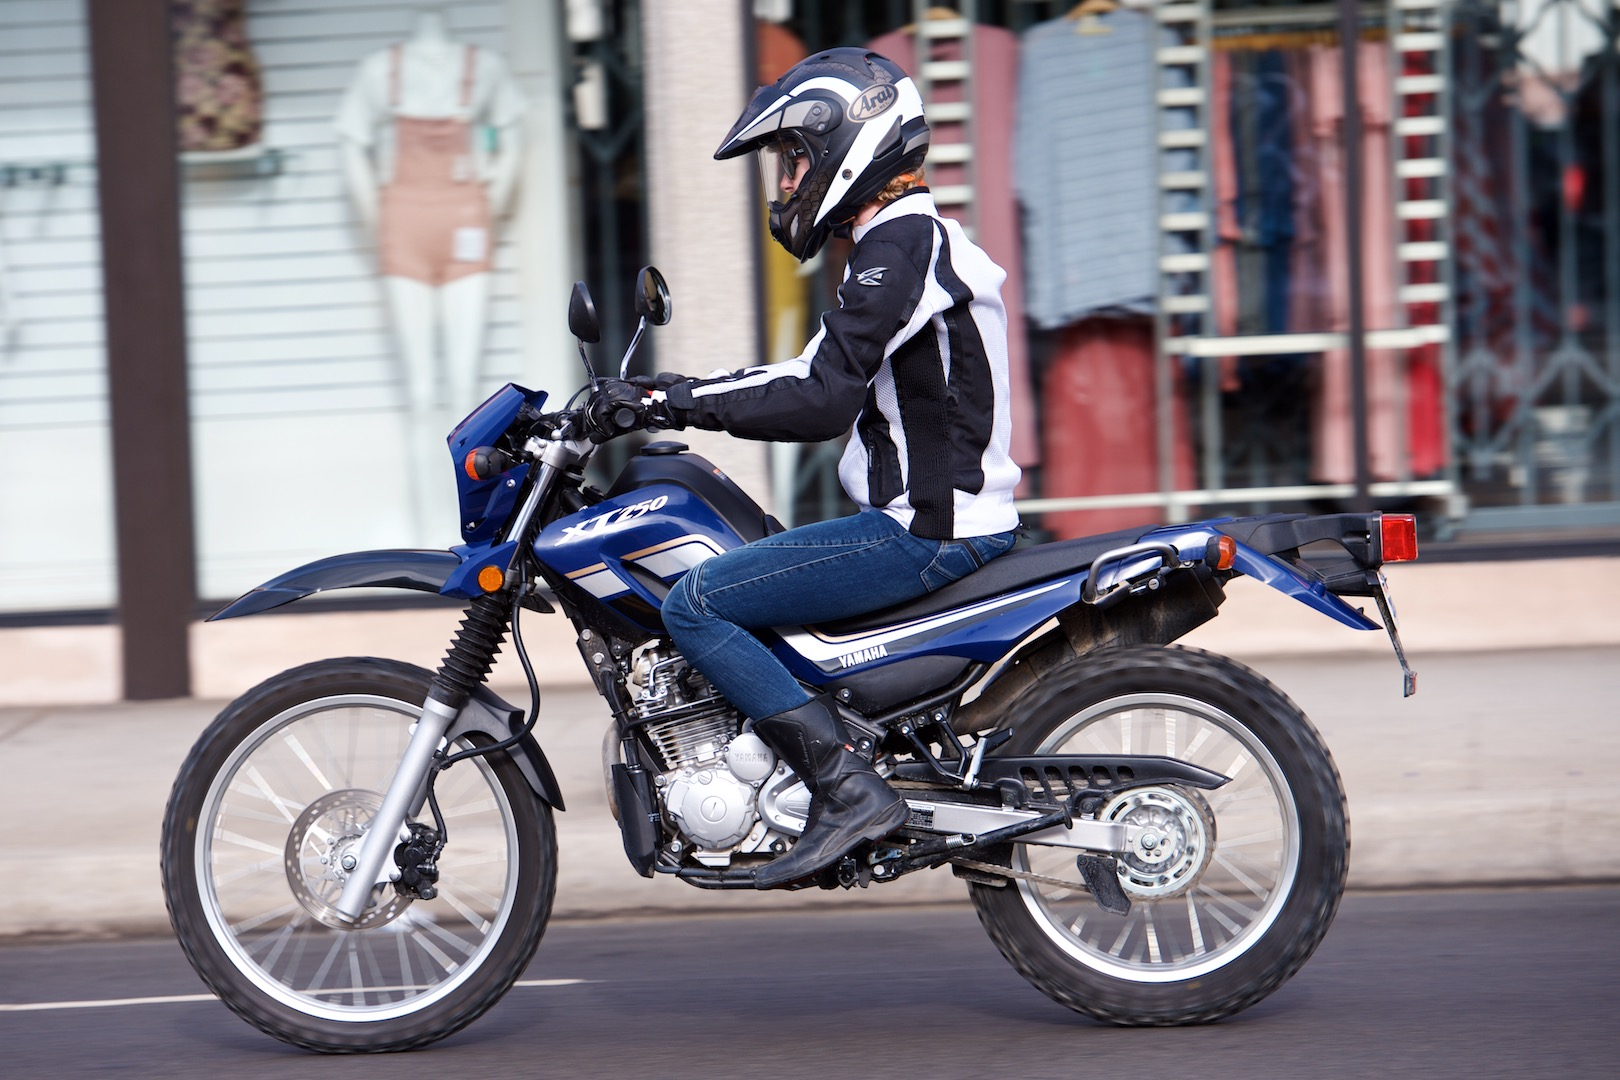 2017 Yamaha XT250 Review | Satisfying and Practical Motorcycle